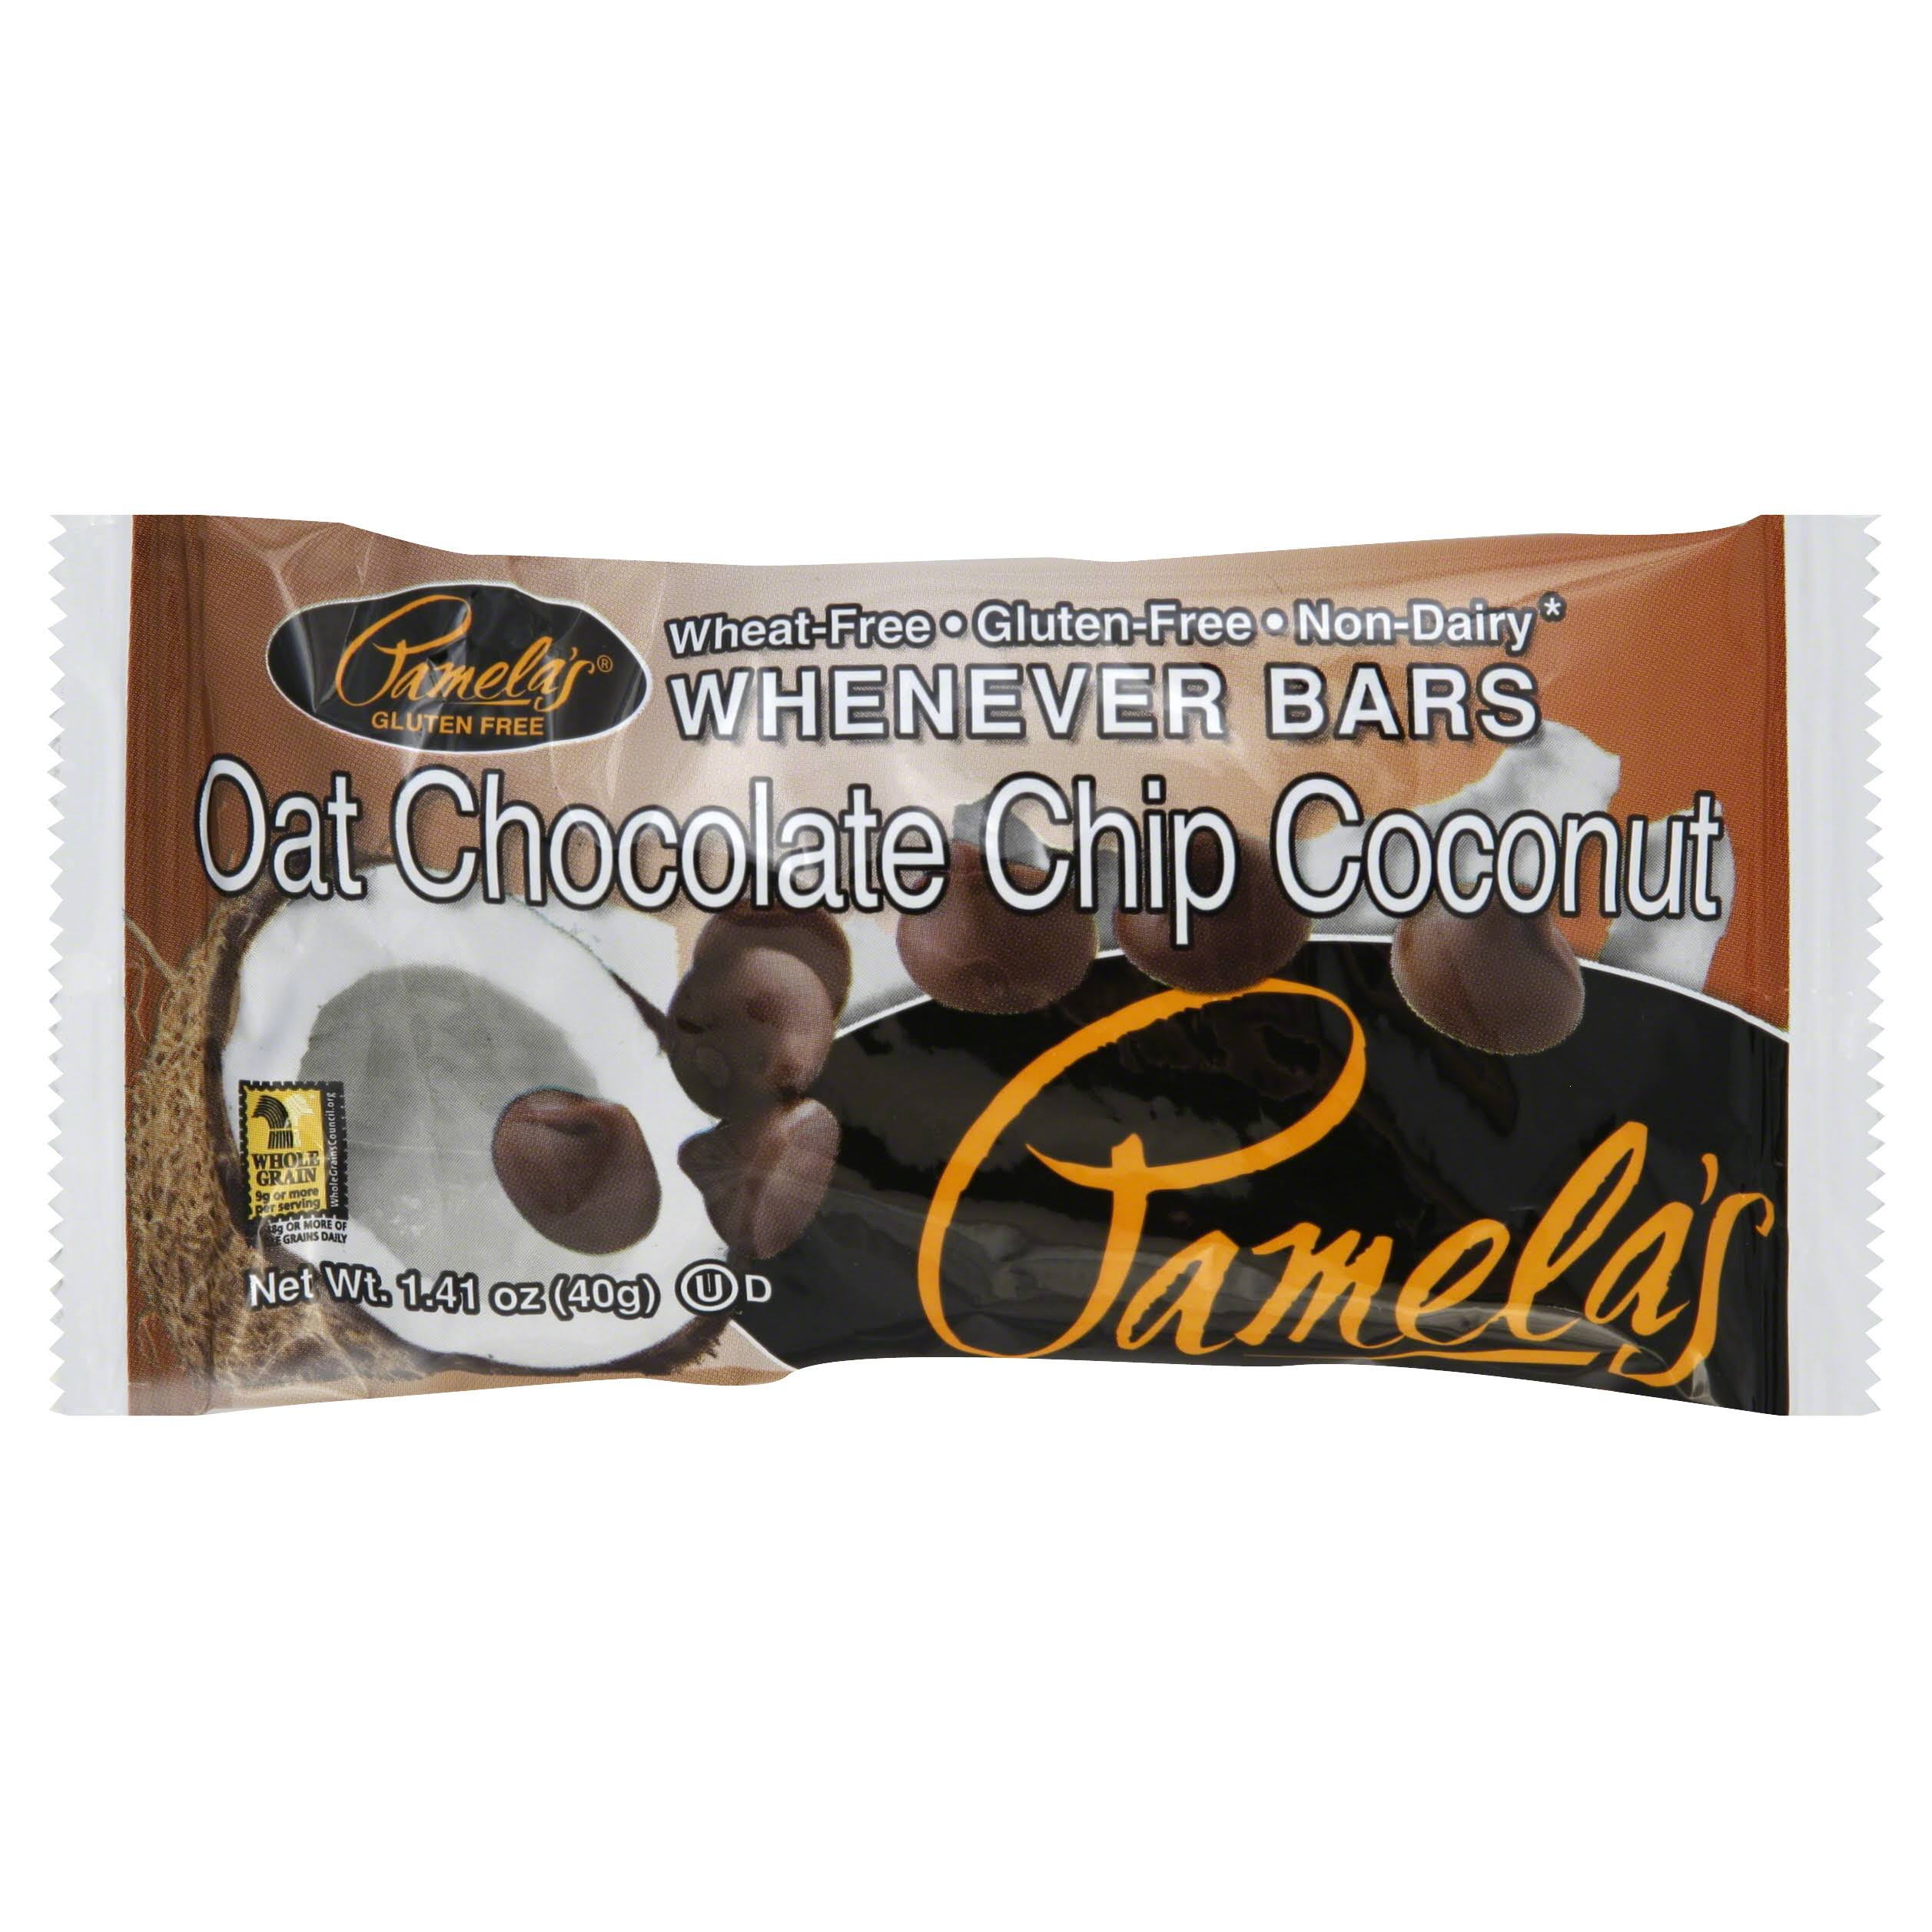 Pamelas Whenever Bars, Oat Chocolate Chip Coconut - 1.41 oz